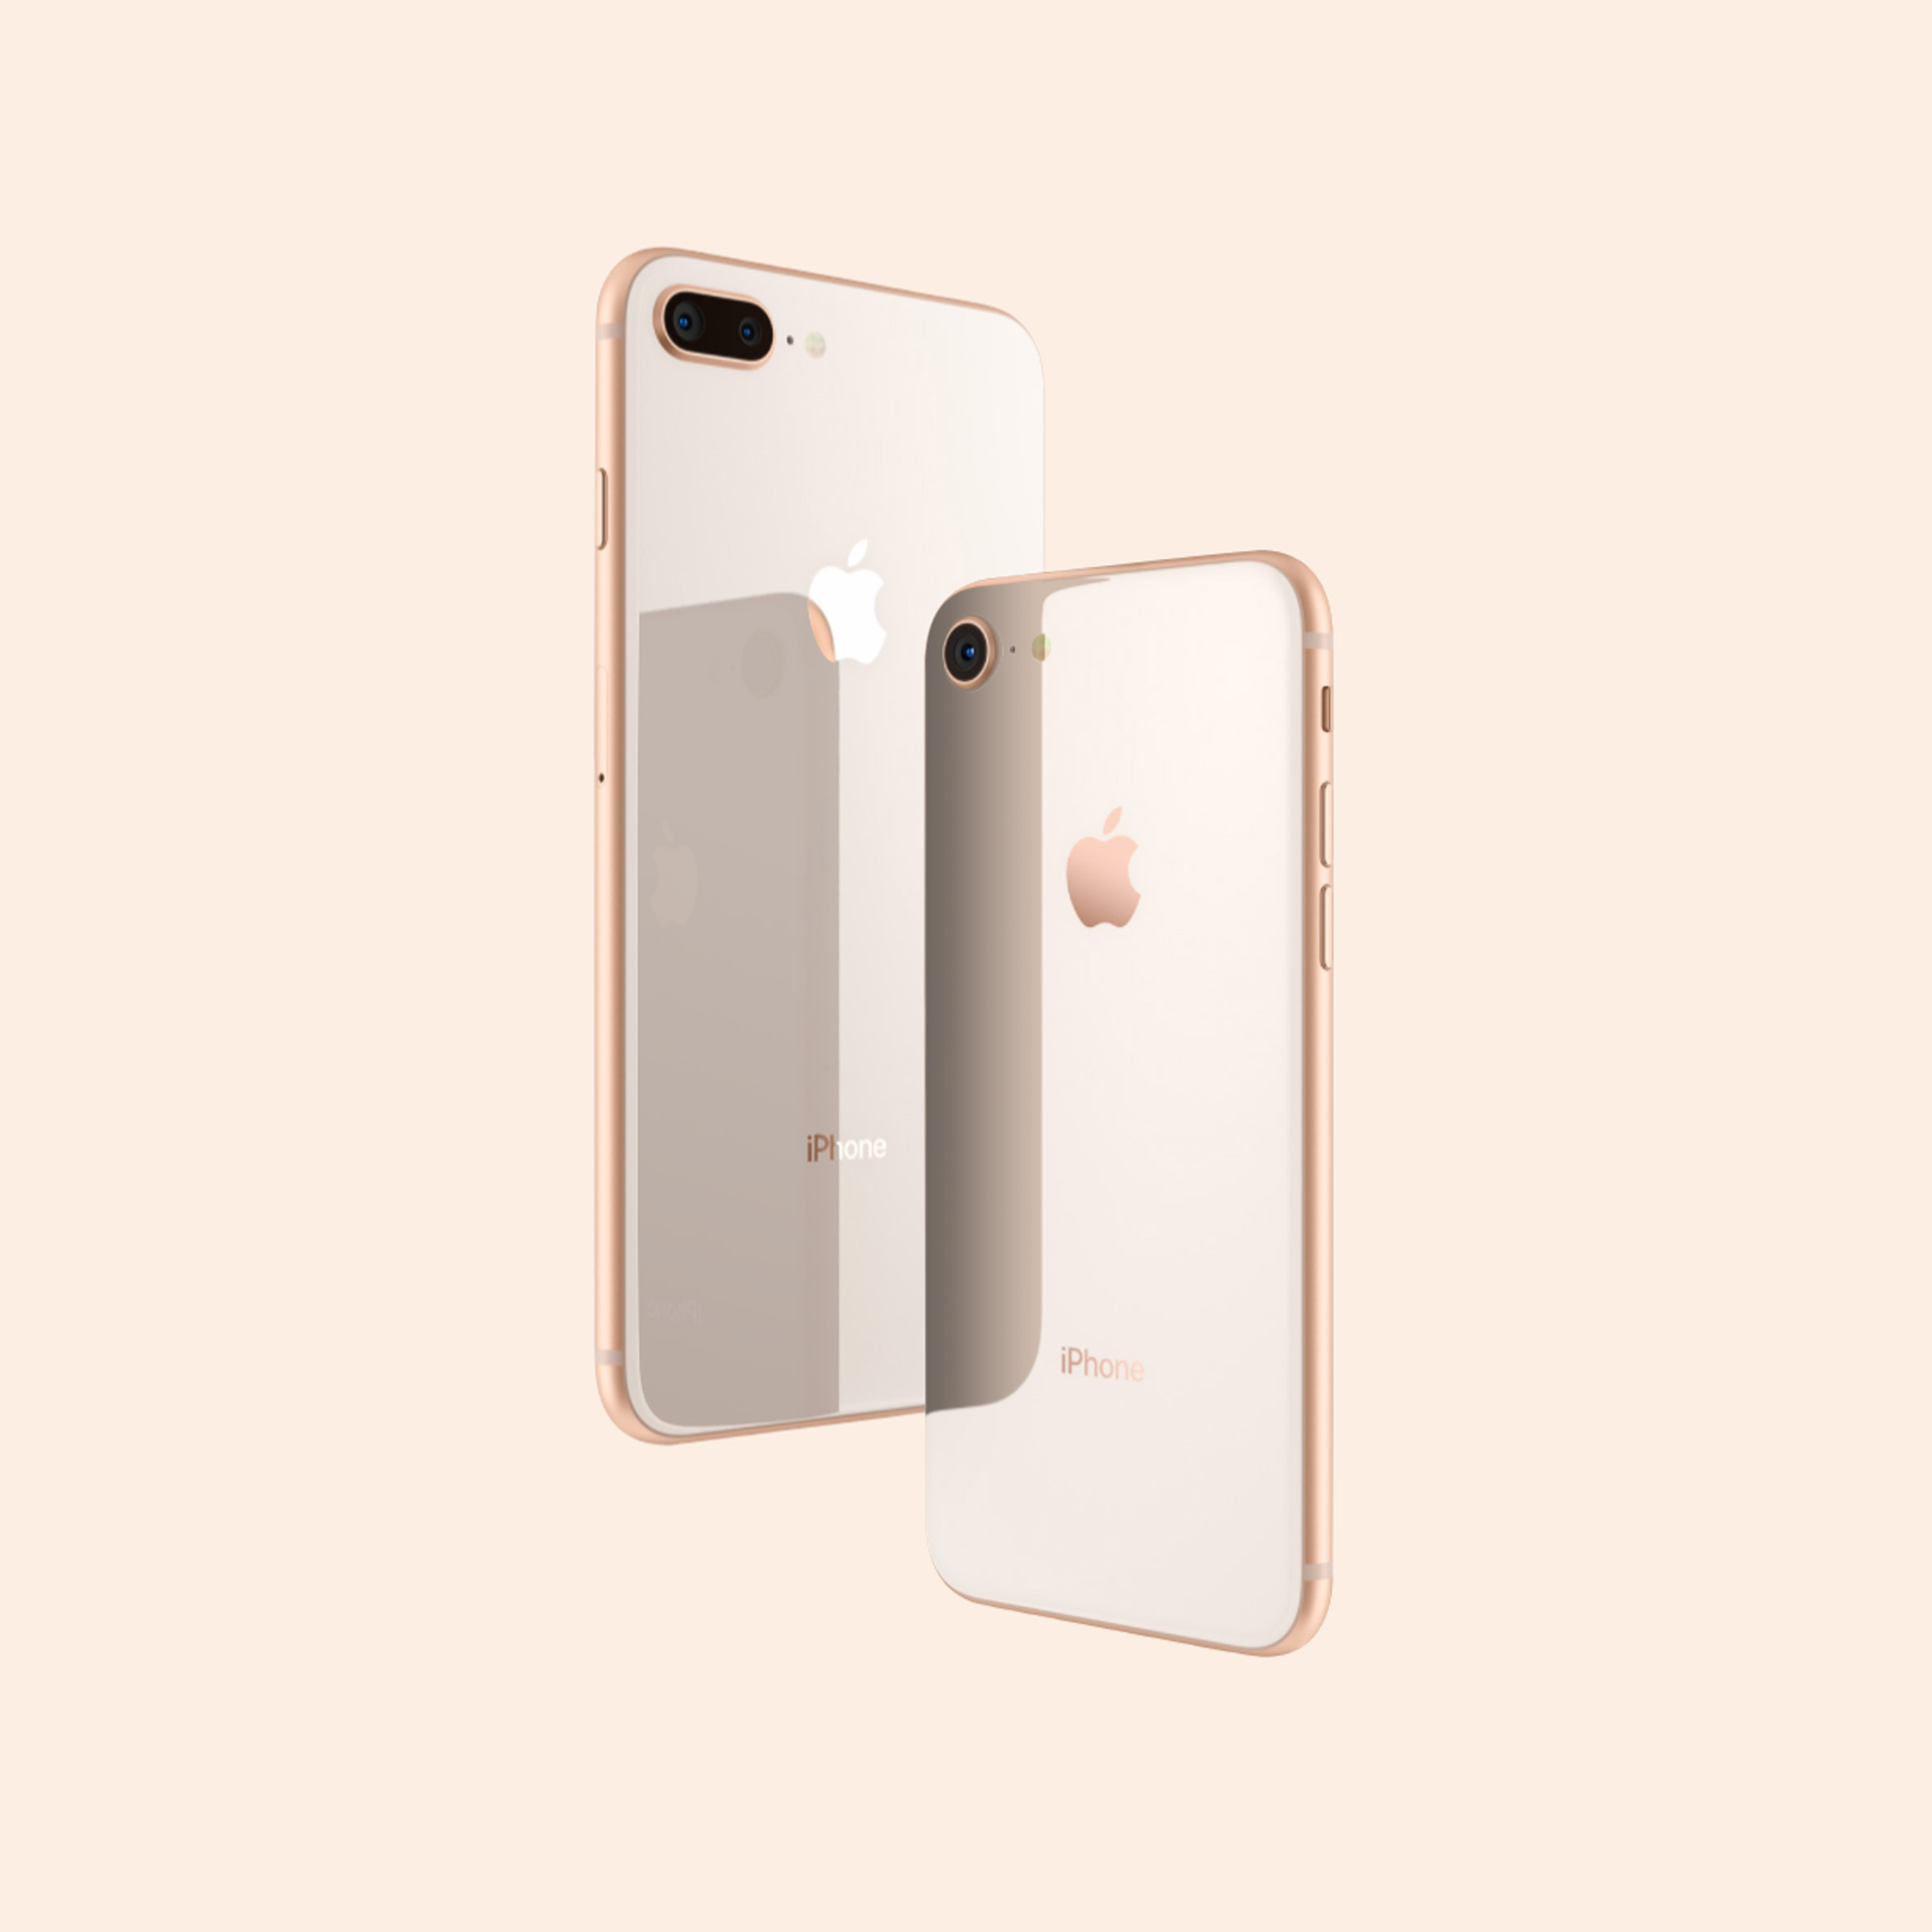 iPhone 8 by Apple